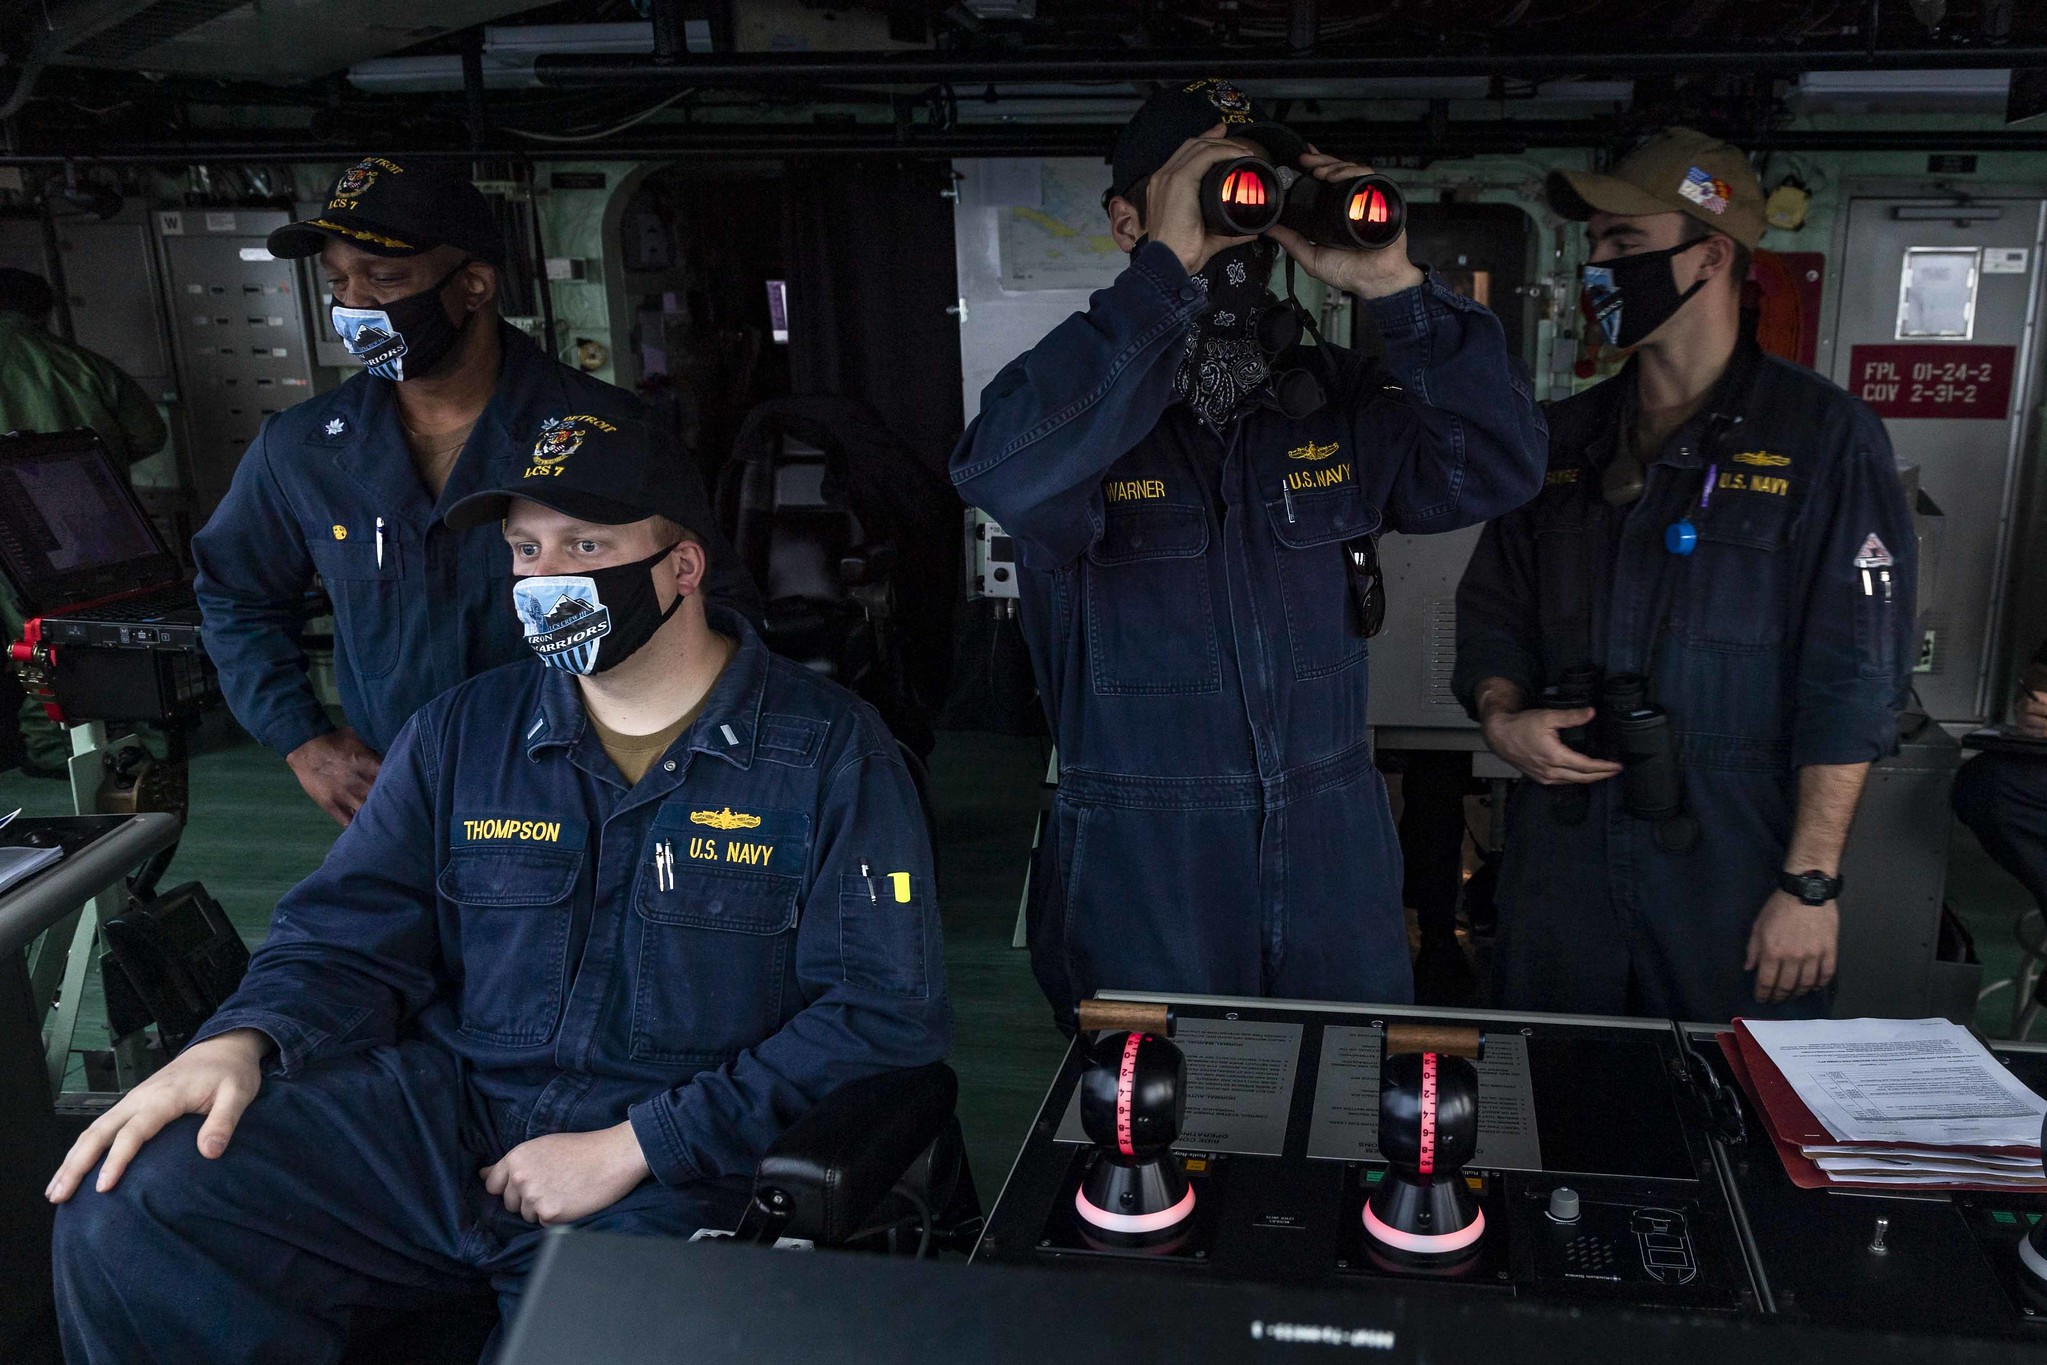 Sailors stand watch on the navigation bridge aboard the Freedom-variant littoral combat ship USS Detroit (LCS 7) as the ship pulls into Colon, Panama, on May 19, 2020, for stores and fuel. Detroit is deployed to the U.S. Southern Command area of responsibility to support Joint Interagency Task Force South's mission, which includes counter illicit drug trafficking in the Caribbean and eastern Pacific. (MC2 Anderson W. Branch/Navy)